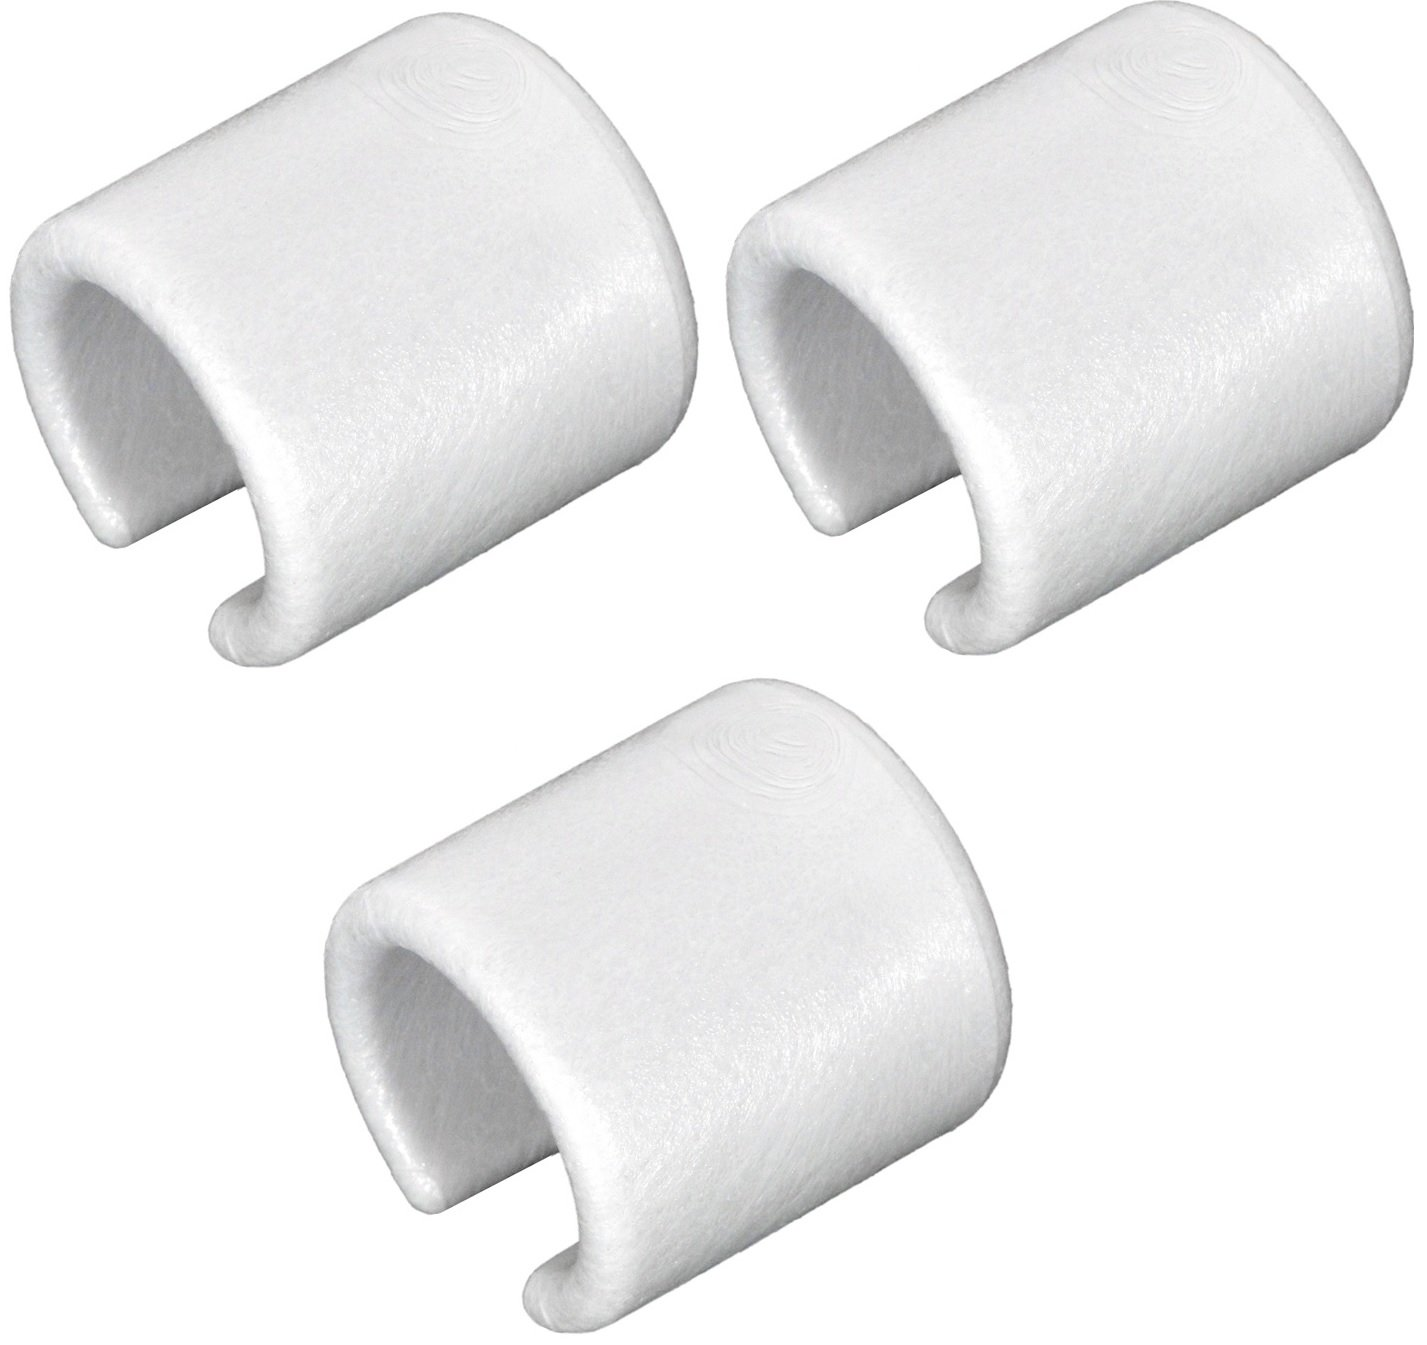 3) Polaris 91001206 Feed Hose Floats Swimming Pool Cleaner 360 Part 9-100-1206